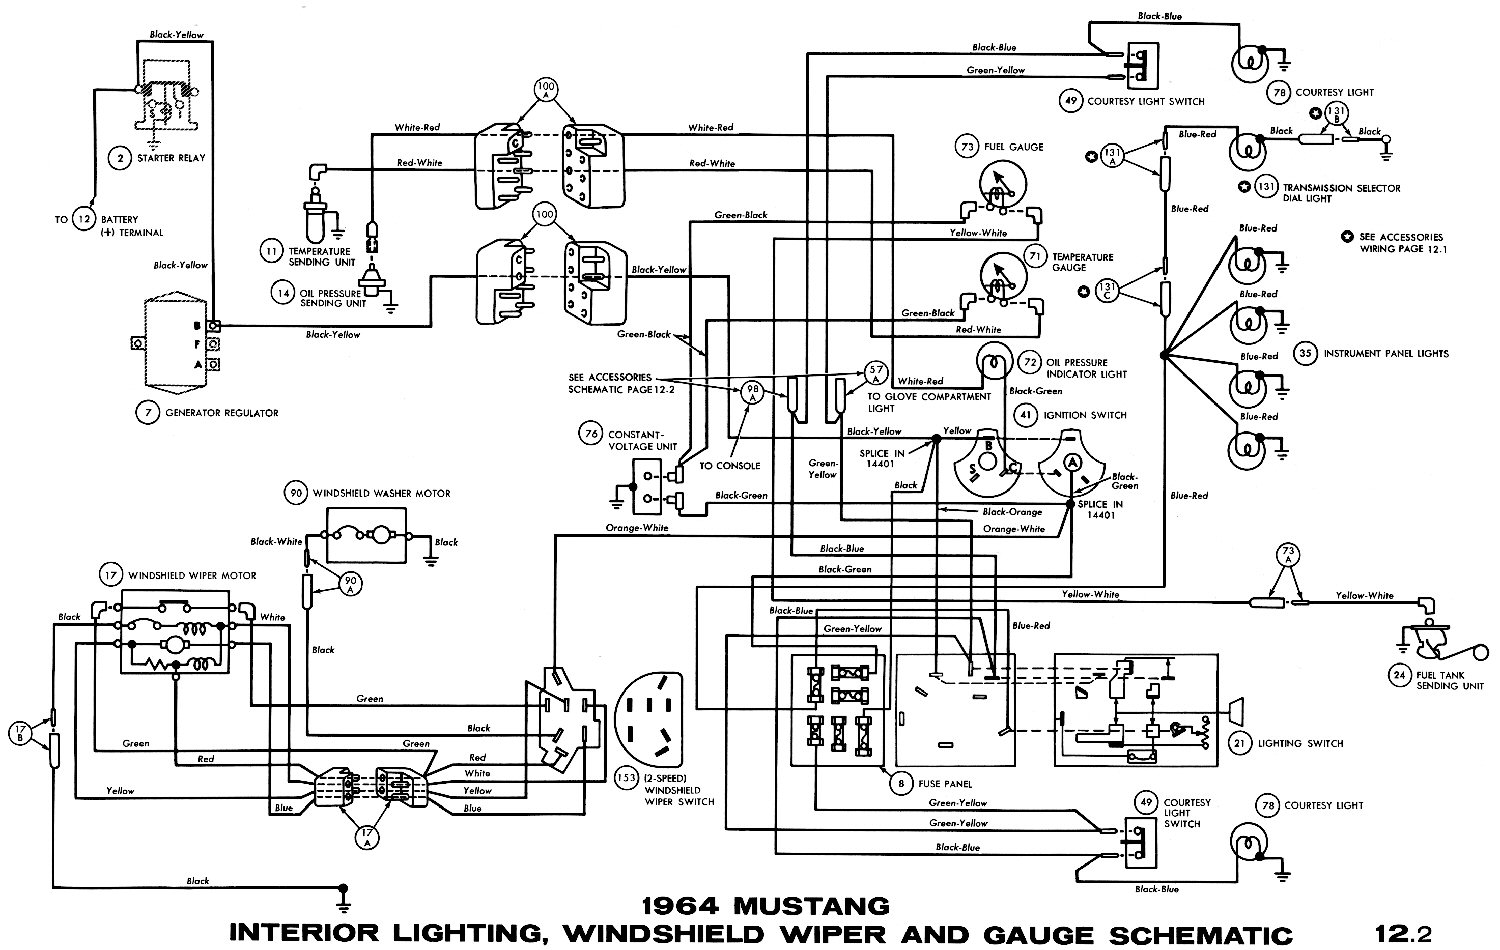 1964k 1964 mustang wiring diagrams average joe restoration 1969 ford mustang wiring diagram at mr168.co